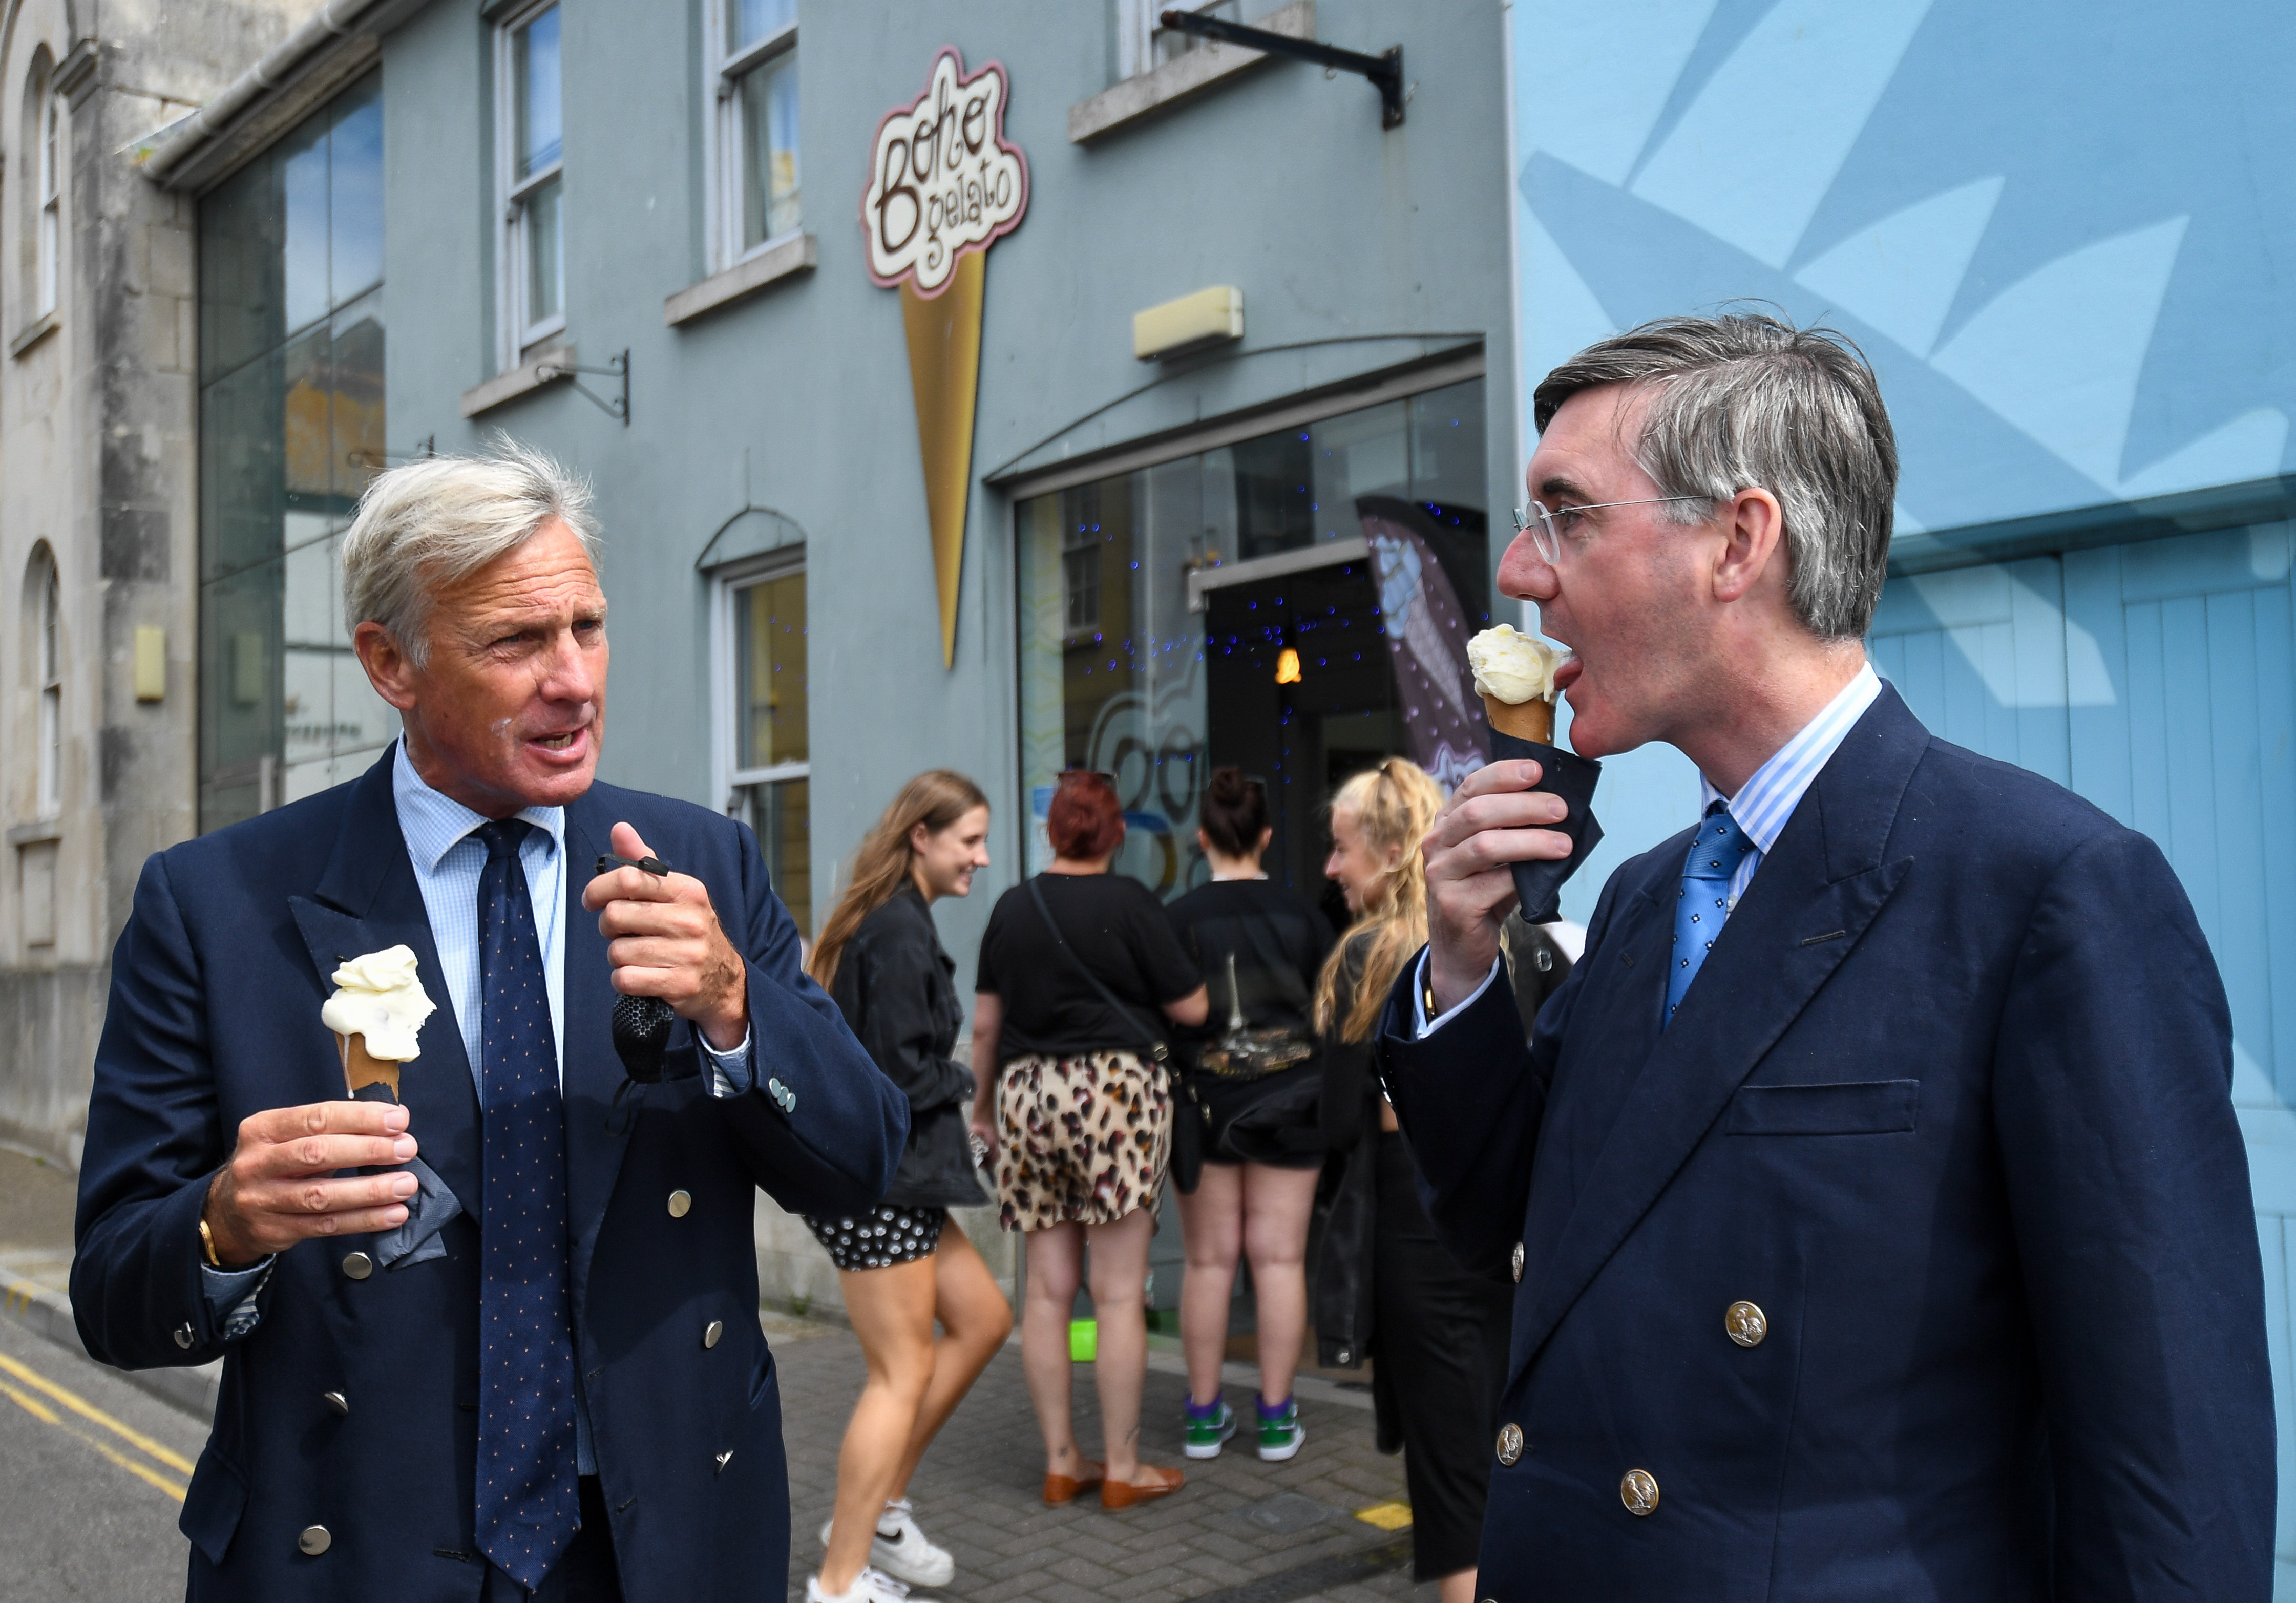 WEYMOUTH, ENGLAND - AUGUST 18: MP for North East Somerset, Jacob Rees-Mogg (R) visits Boho Gelato ice cream parlour with Richard Drax MP at the harbourside on August 18, 2020 in Weymouth, England. (Photo by Finnbarr Webster/Getty Images)